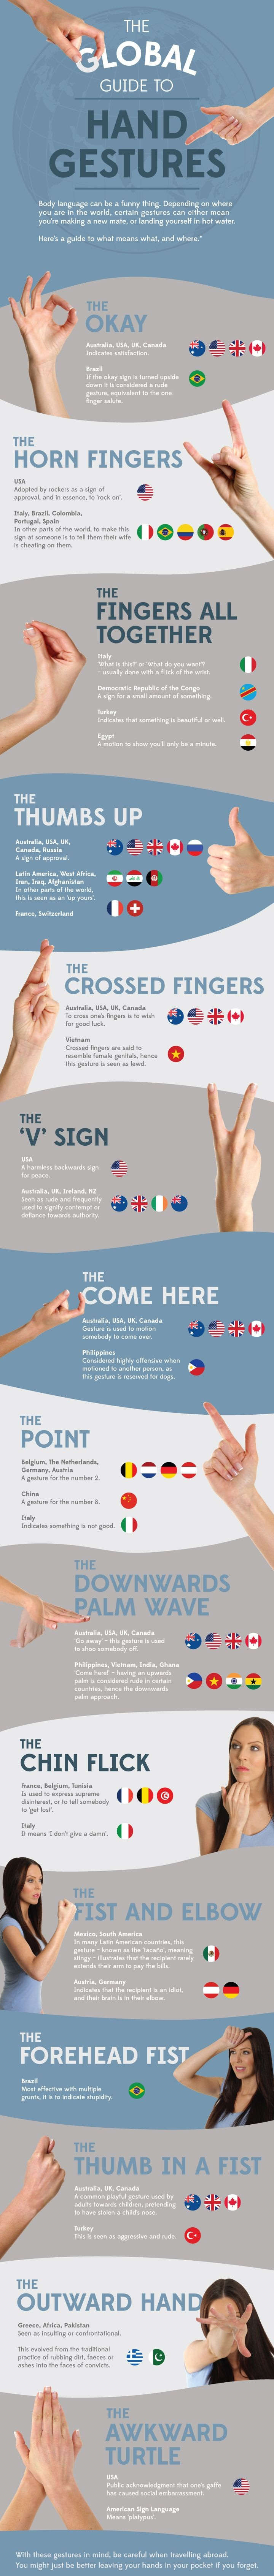 hand gesture around the world